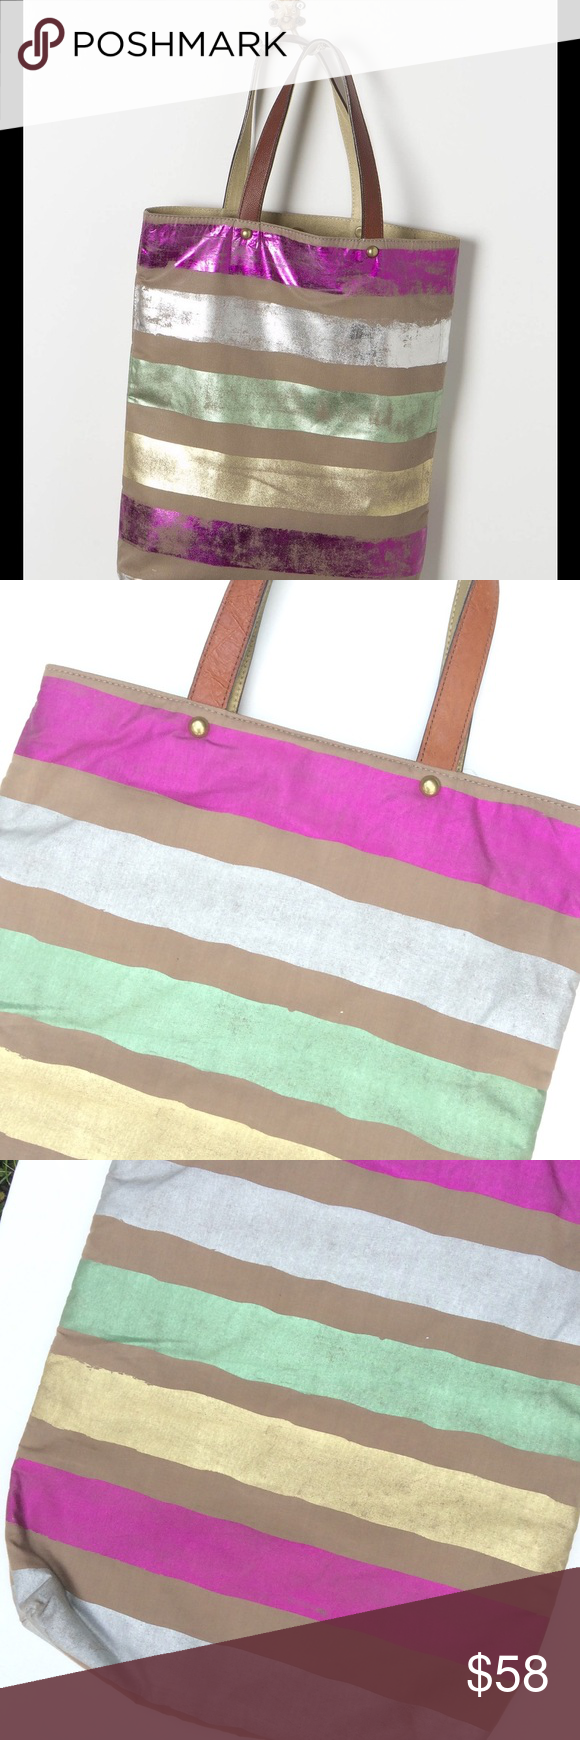 Anthropologie Jasper and Jeera Foil Striped Tote Gorgeous shimmery Summery tote from Anthro. Such awesome quality, real leather handles. Snap closure. Zippered pocket, two open pockets on inside. Brand new never used. Line drawn through name. Anthropologie Bags Totes